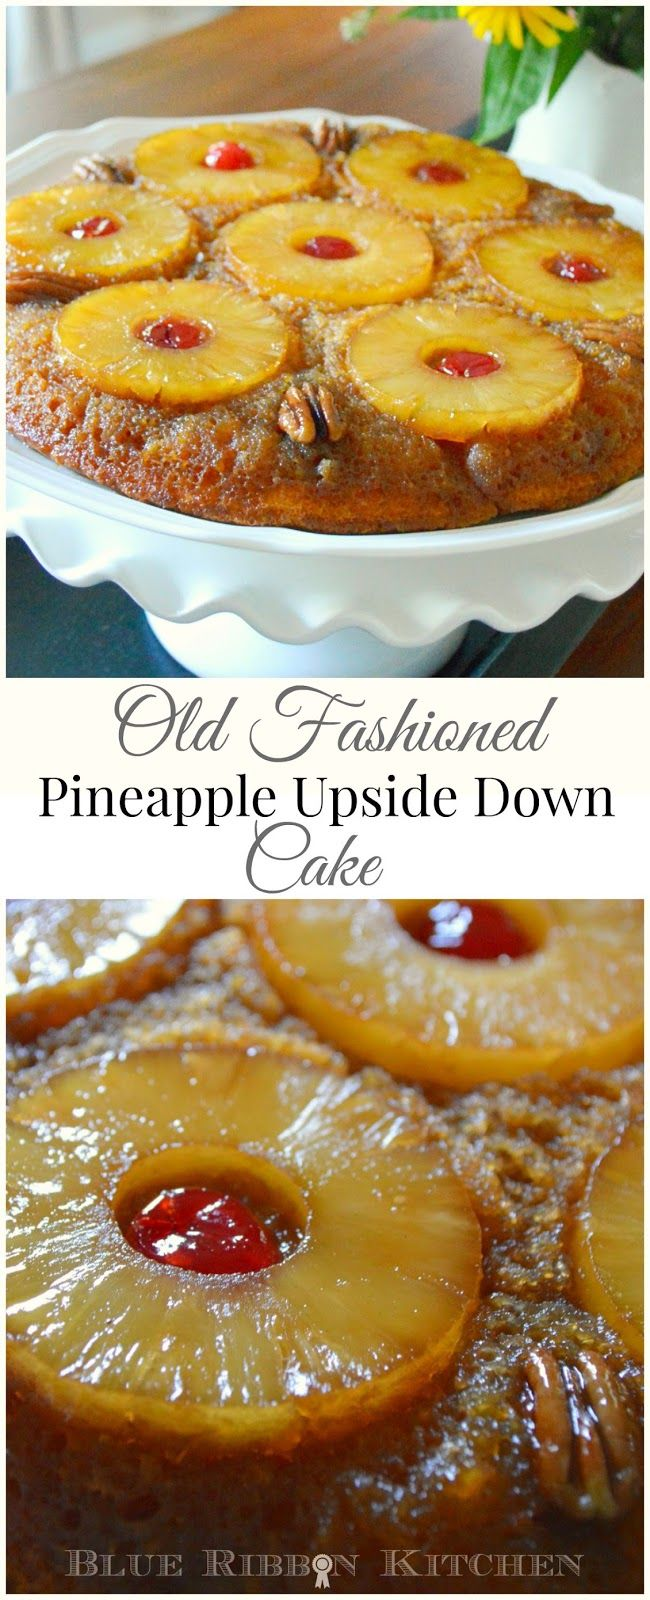 Blue Ribbon Kitchen: Cinderella's Pineapple Upside Down Cake. Old Fashioned skillet pineapple upside down cake recipe